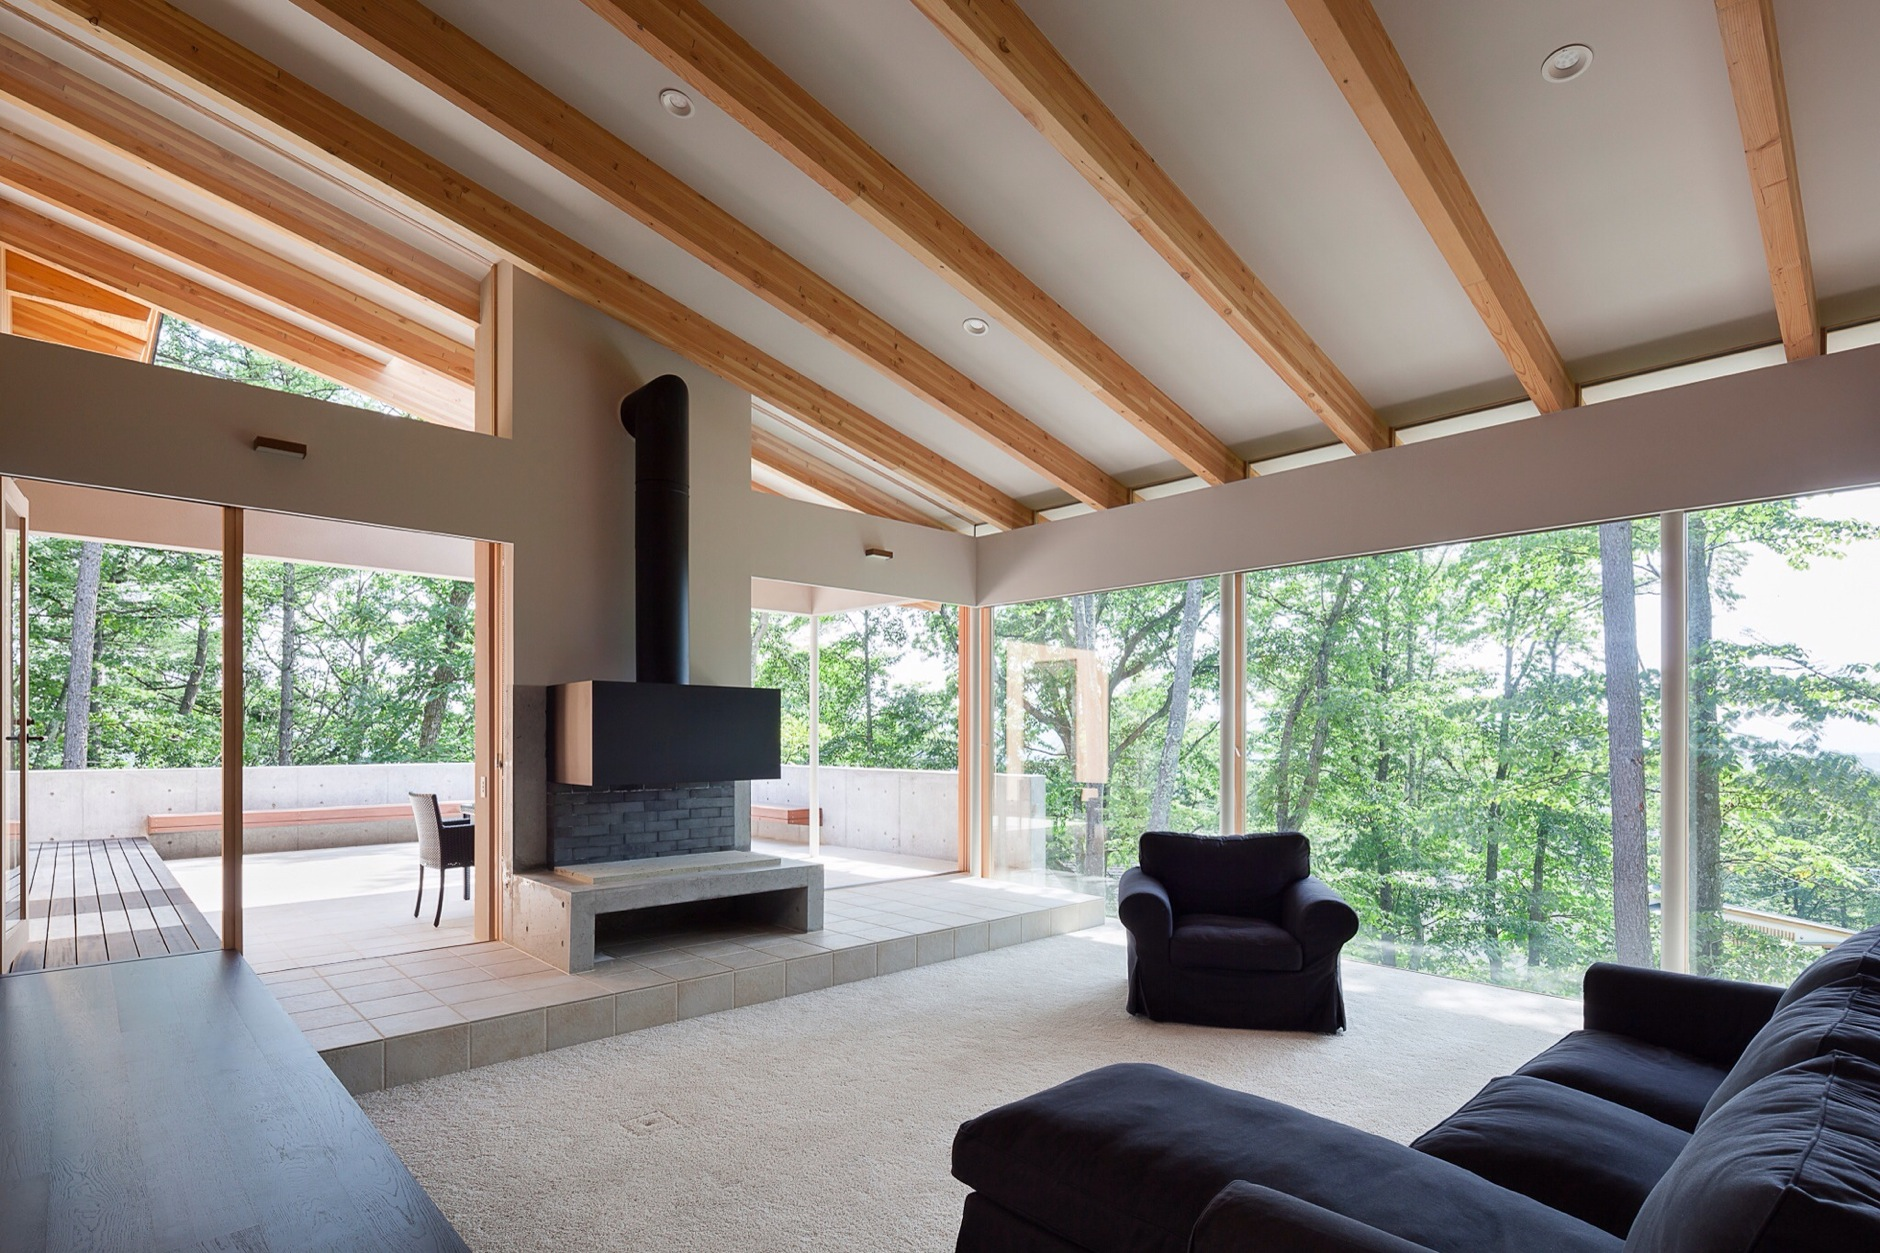 Japan Listing – Contemporary House with View 3